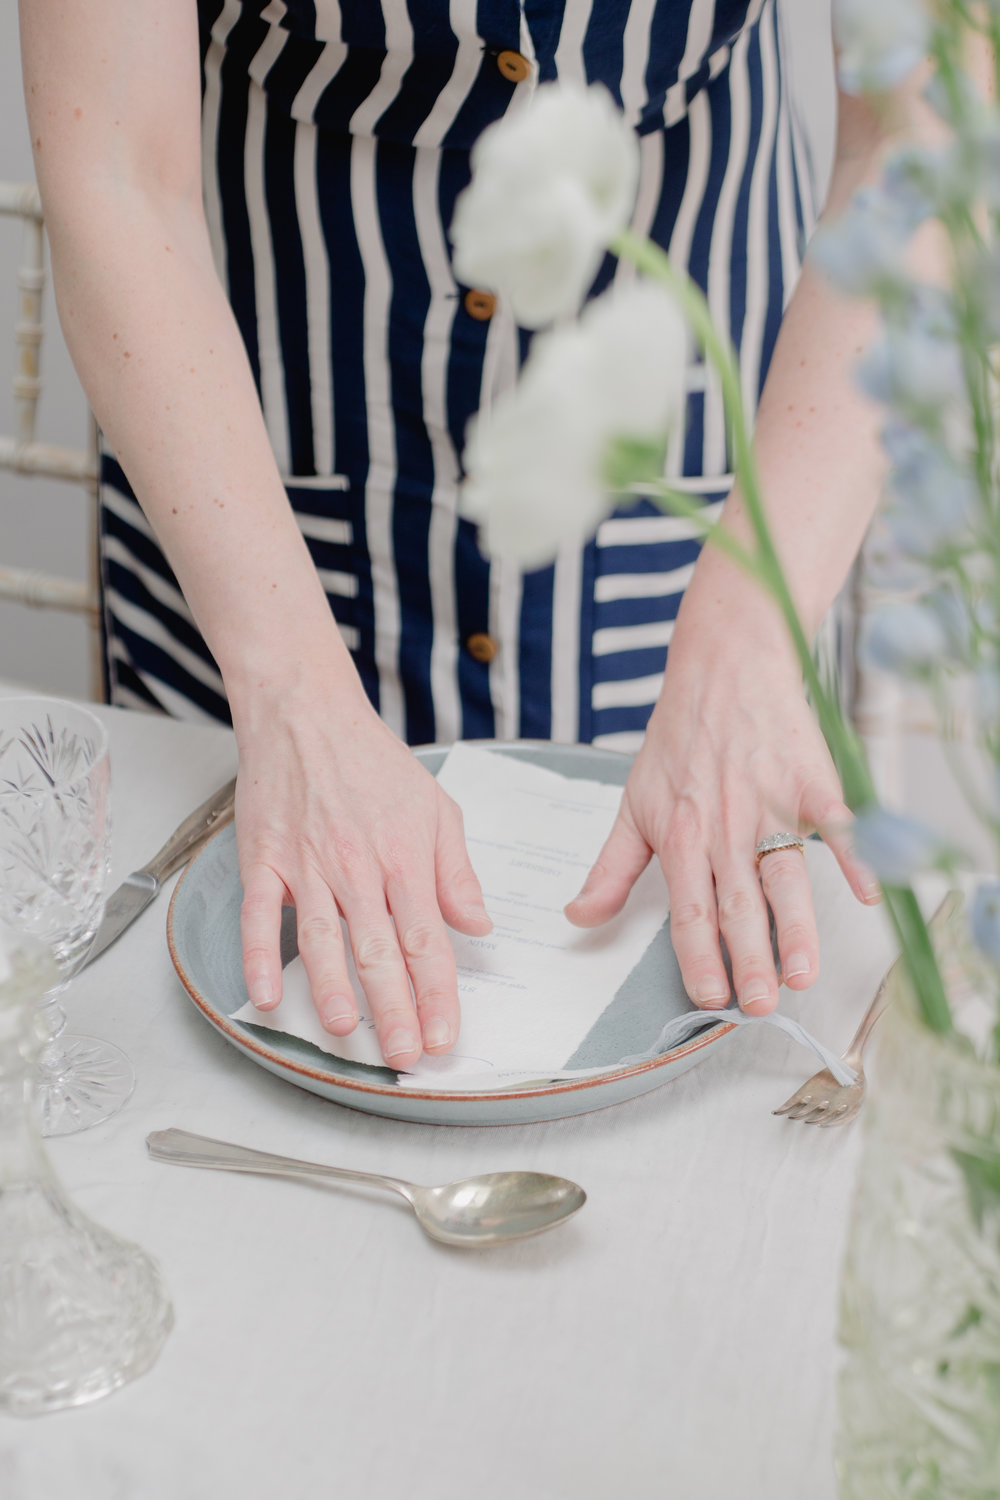 The Timeless Stylist-UK Wedding Design and Styling-Simple Summer Tablescape Styling-Blue and White Wedding Table Place Setting